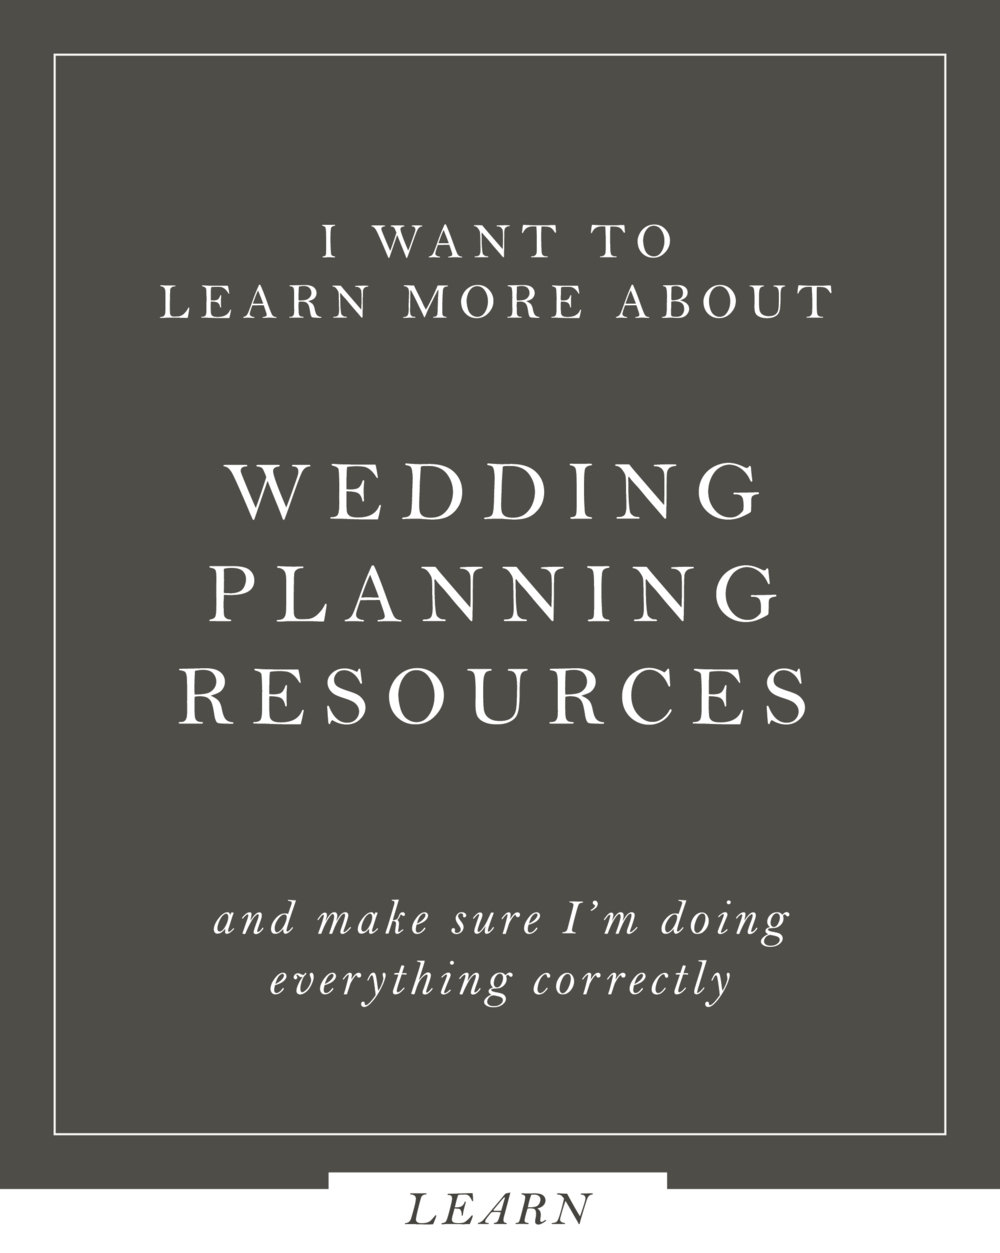 talk about-planning resources.png